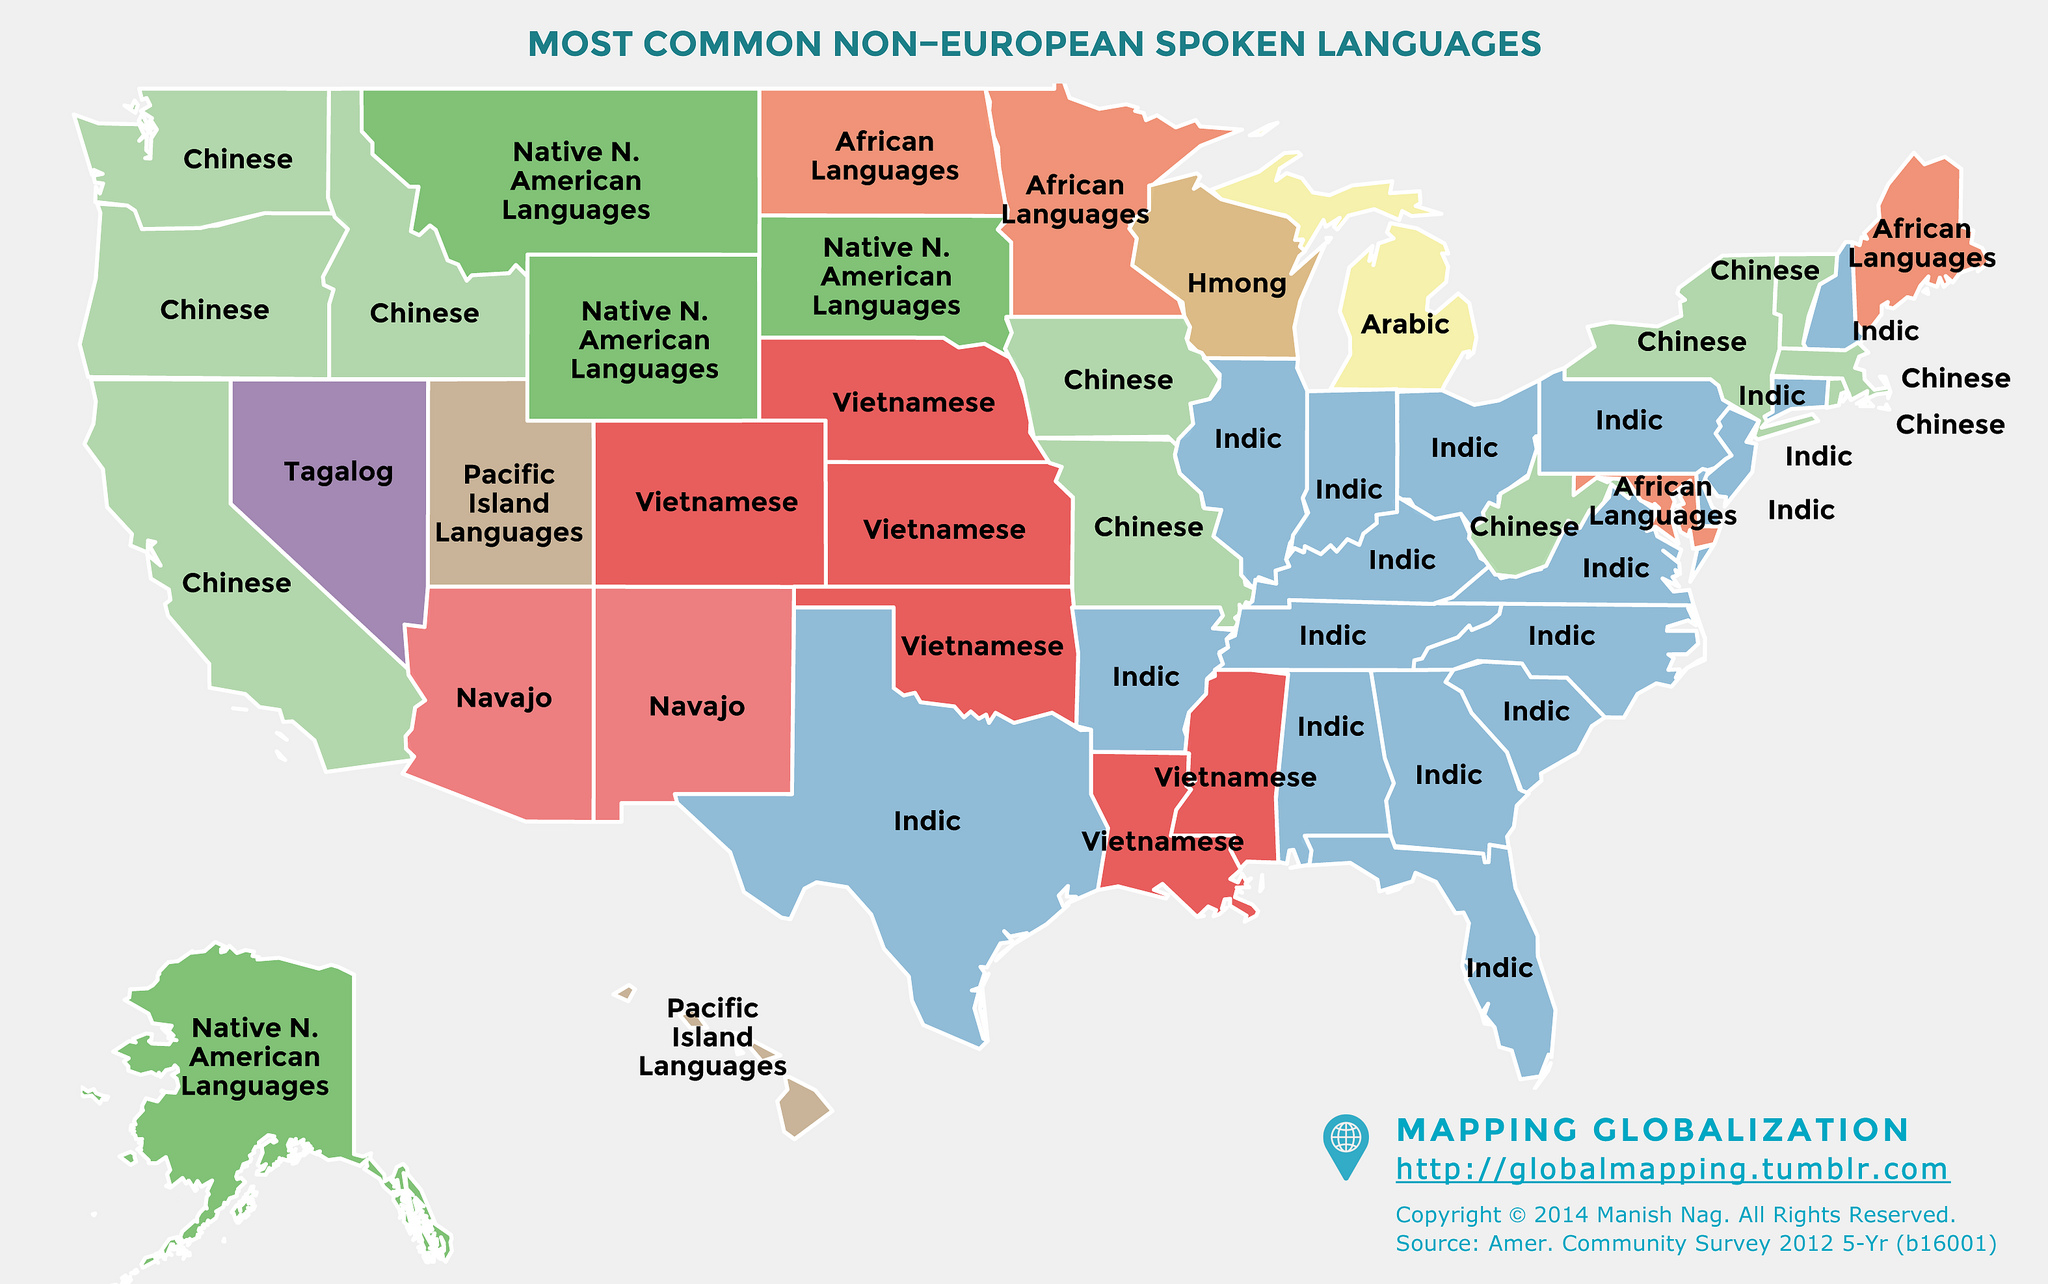 Most Commonly Spoken South Asian Languages In North